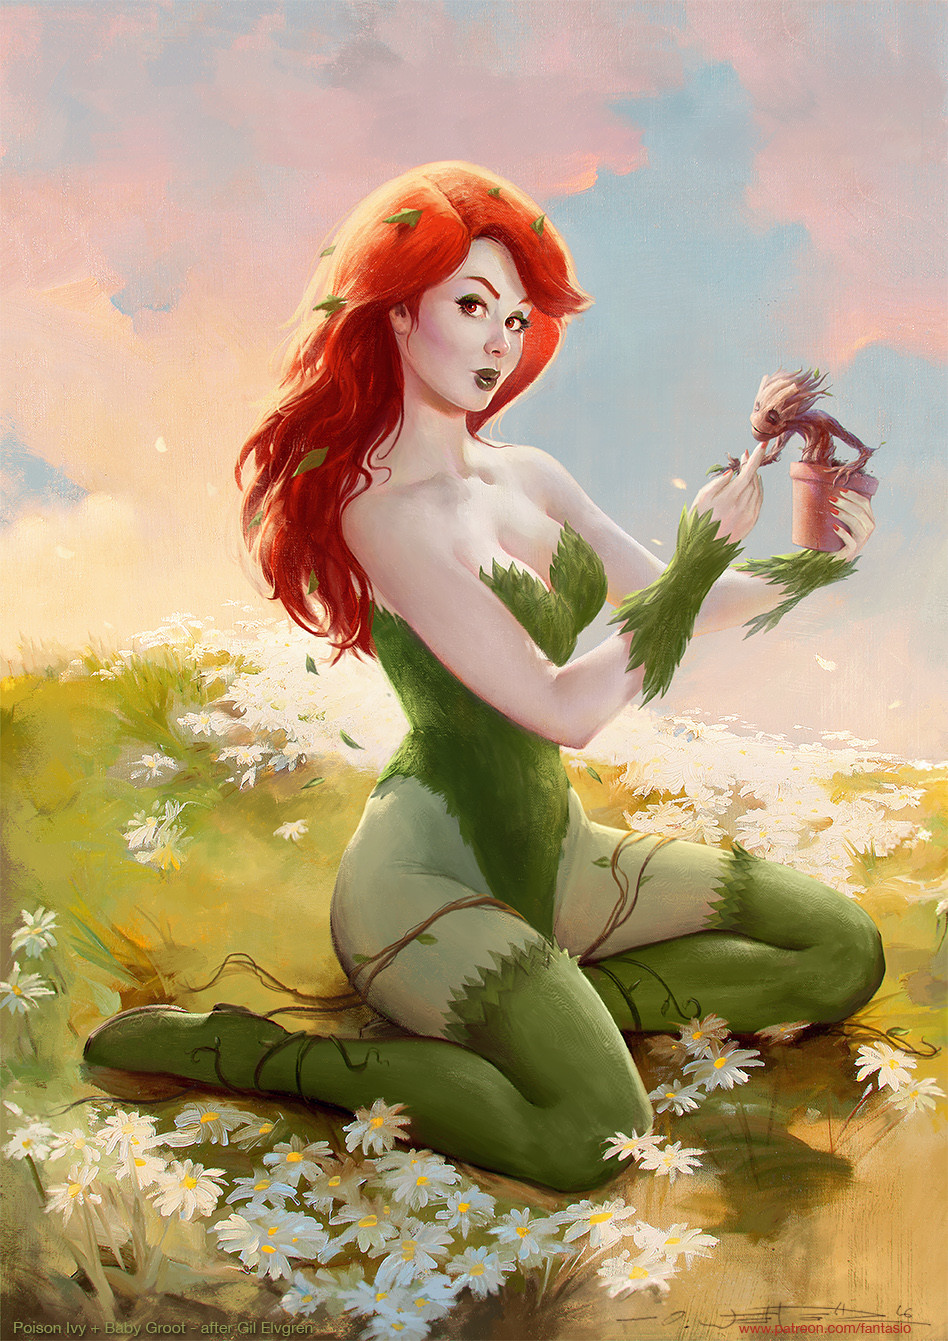 Oliver wetter ivy and groot concept1 1final web small text